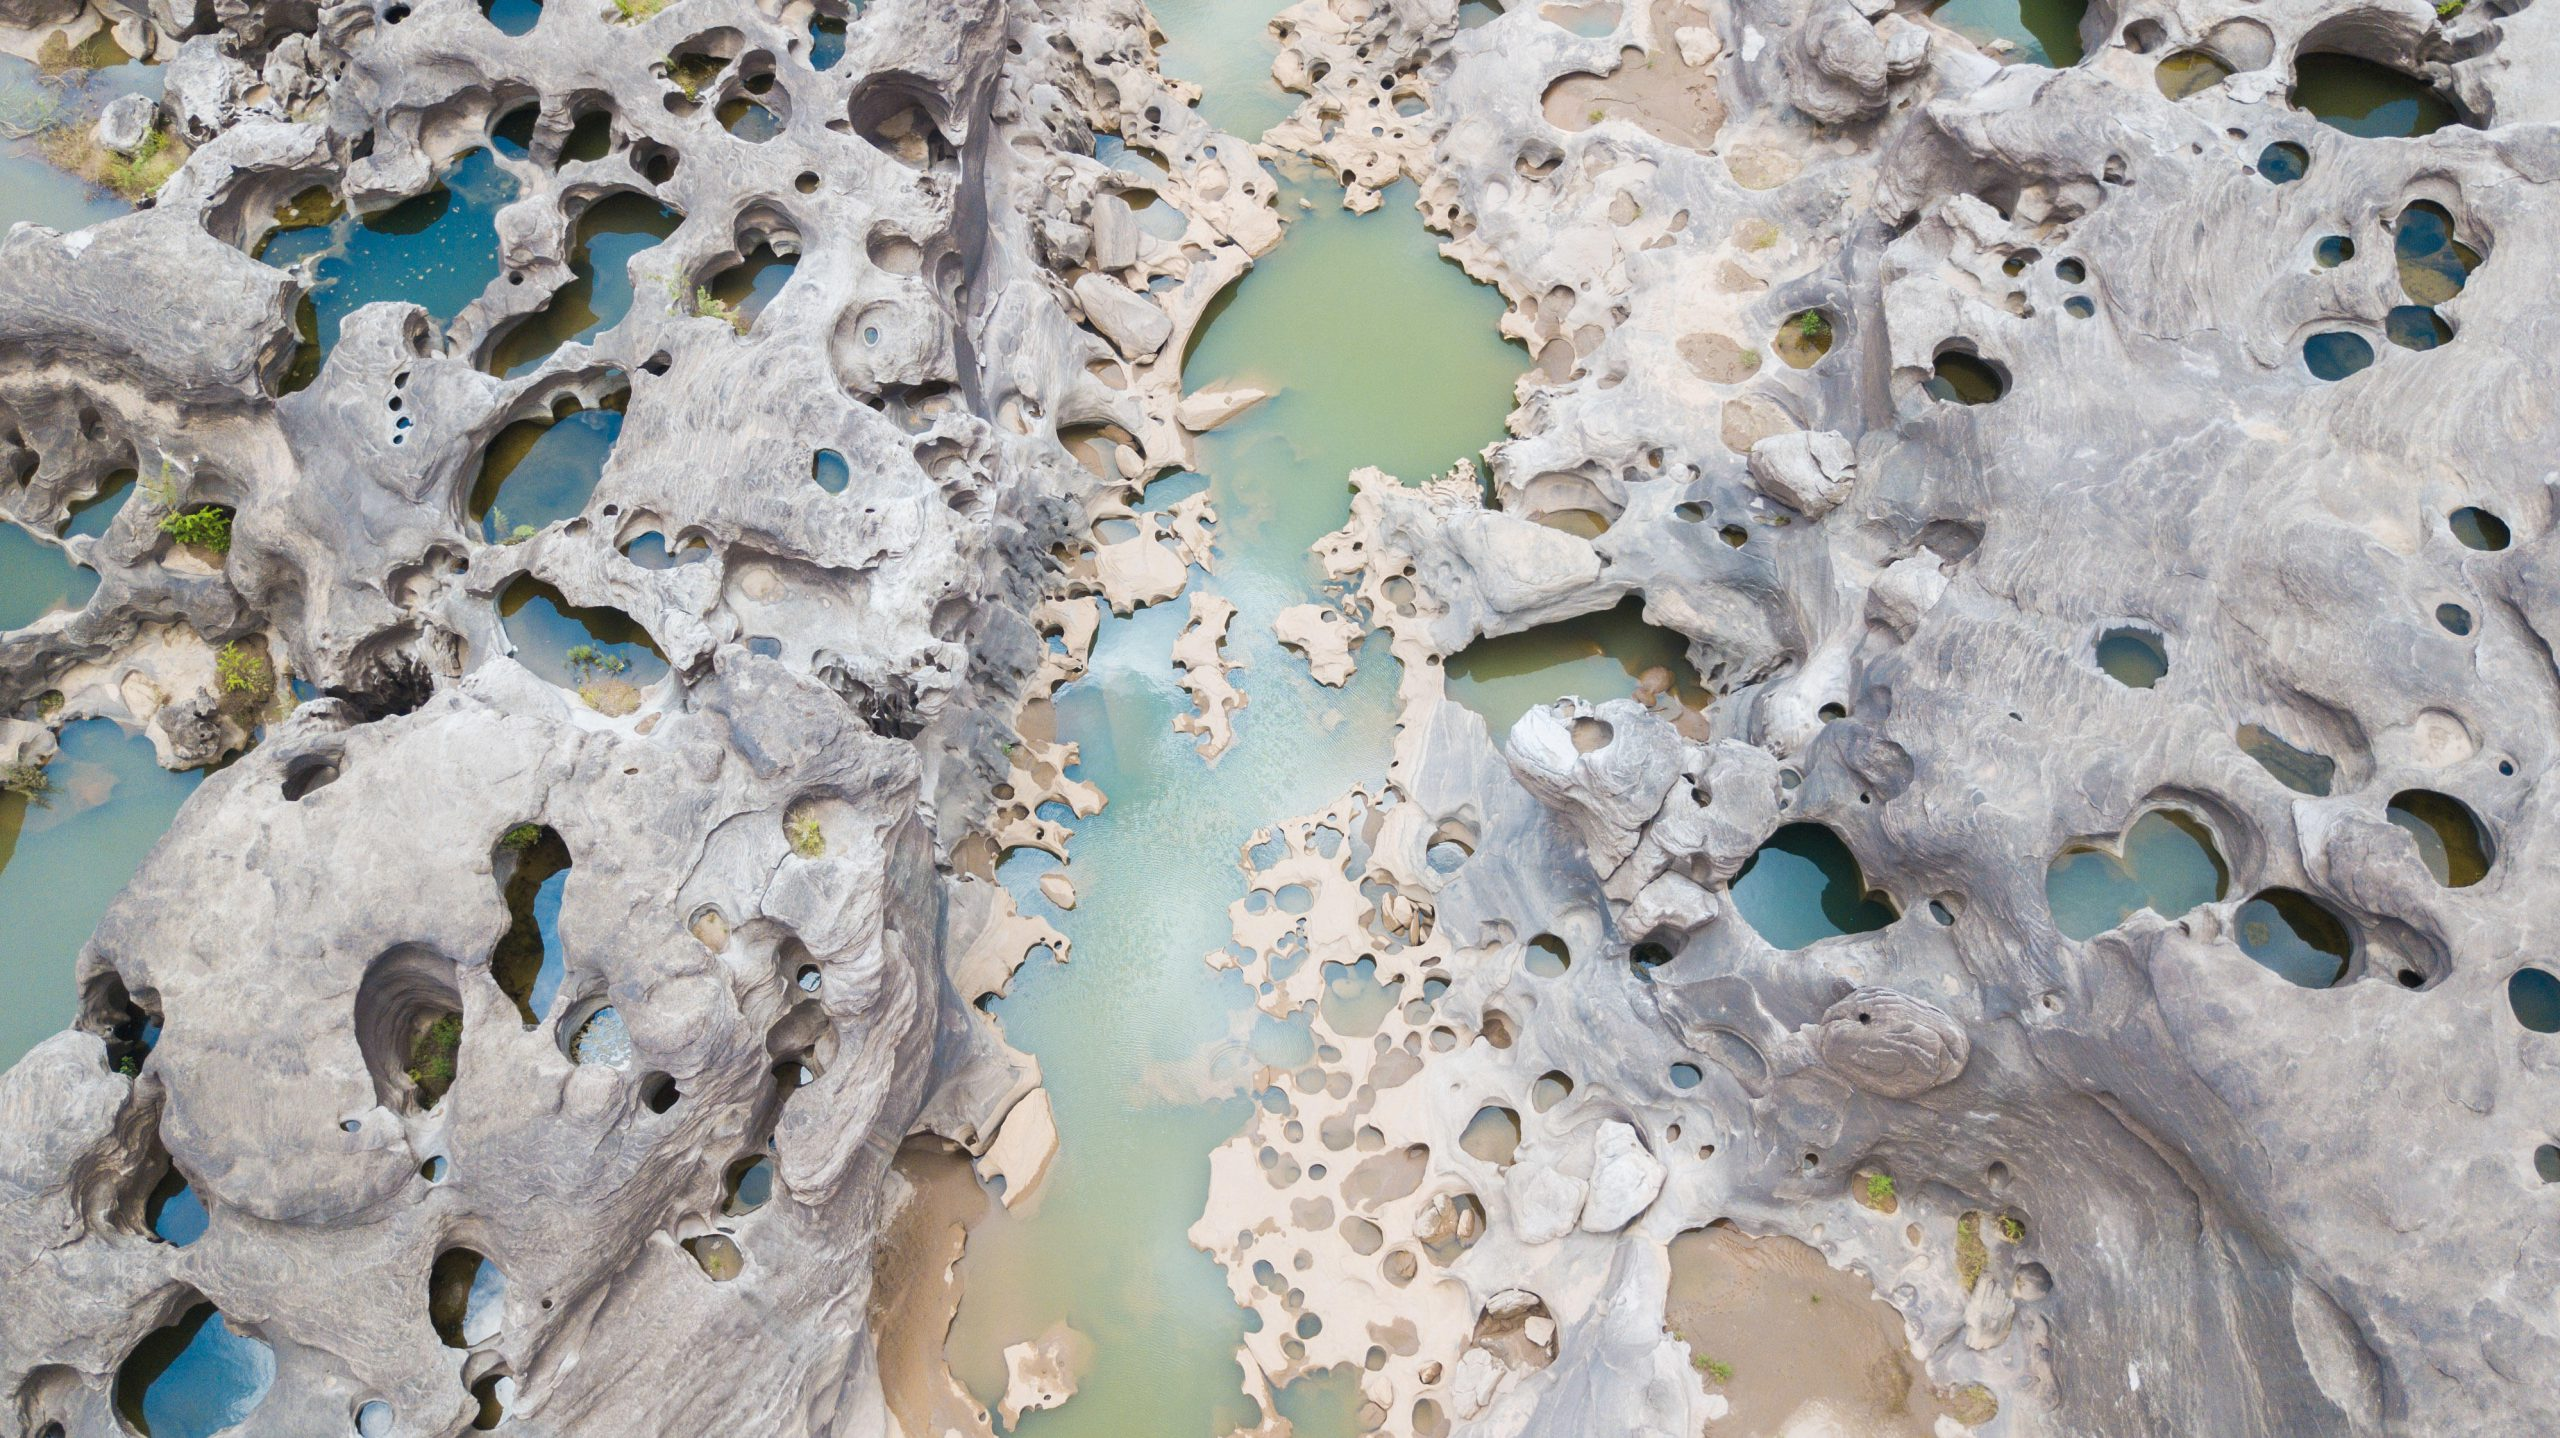 Aerial photo of the Mekong River in Ubon Ratchathani, Thailand during the severe drought of 2019. (Credit: Zhang Keren/Xinhua/Alamy)